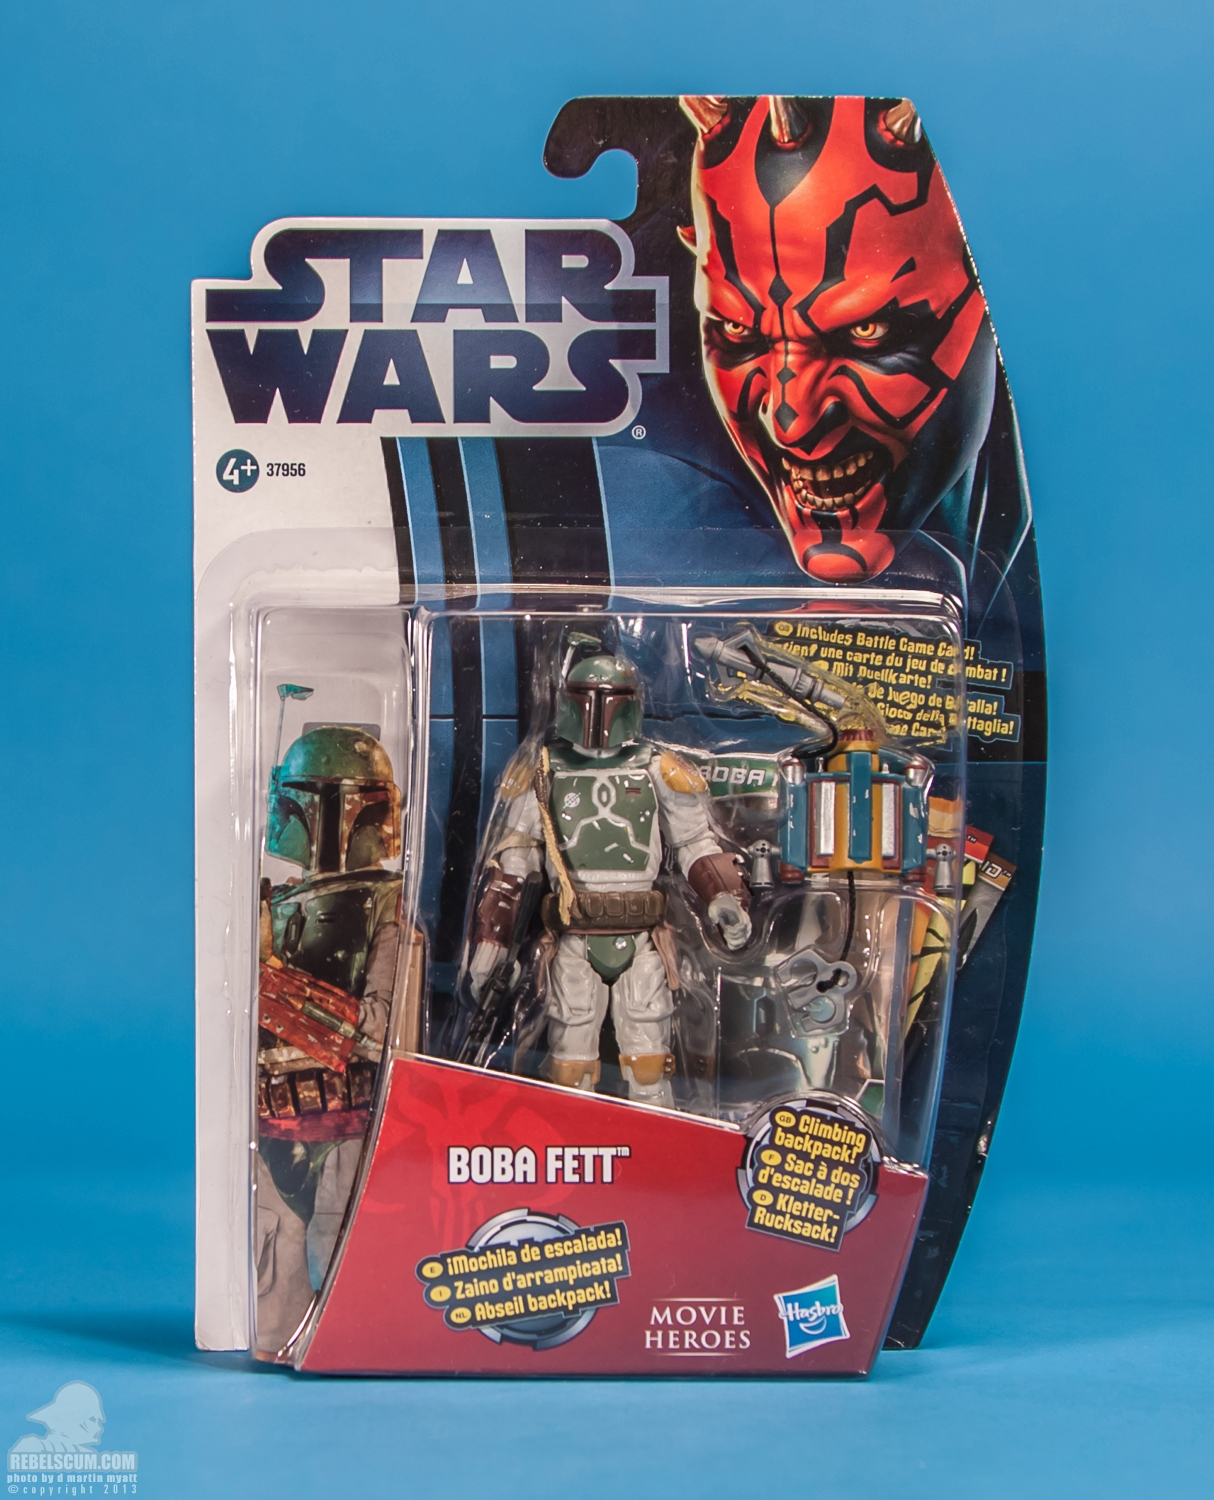 Mh24 2012 boba fett movie heroes star wars 21